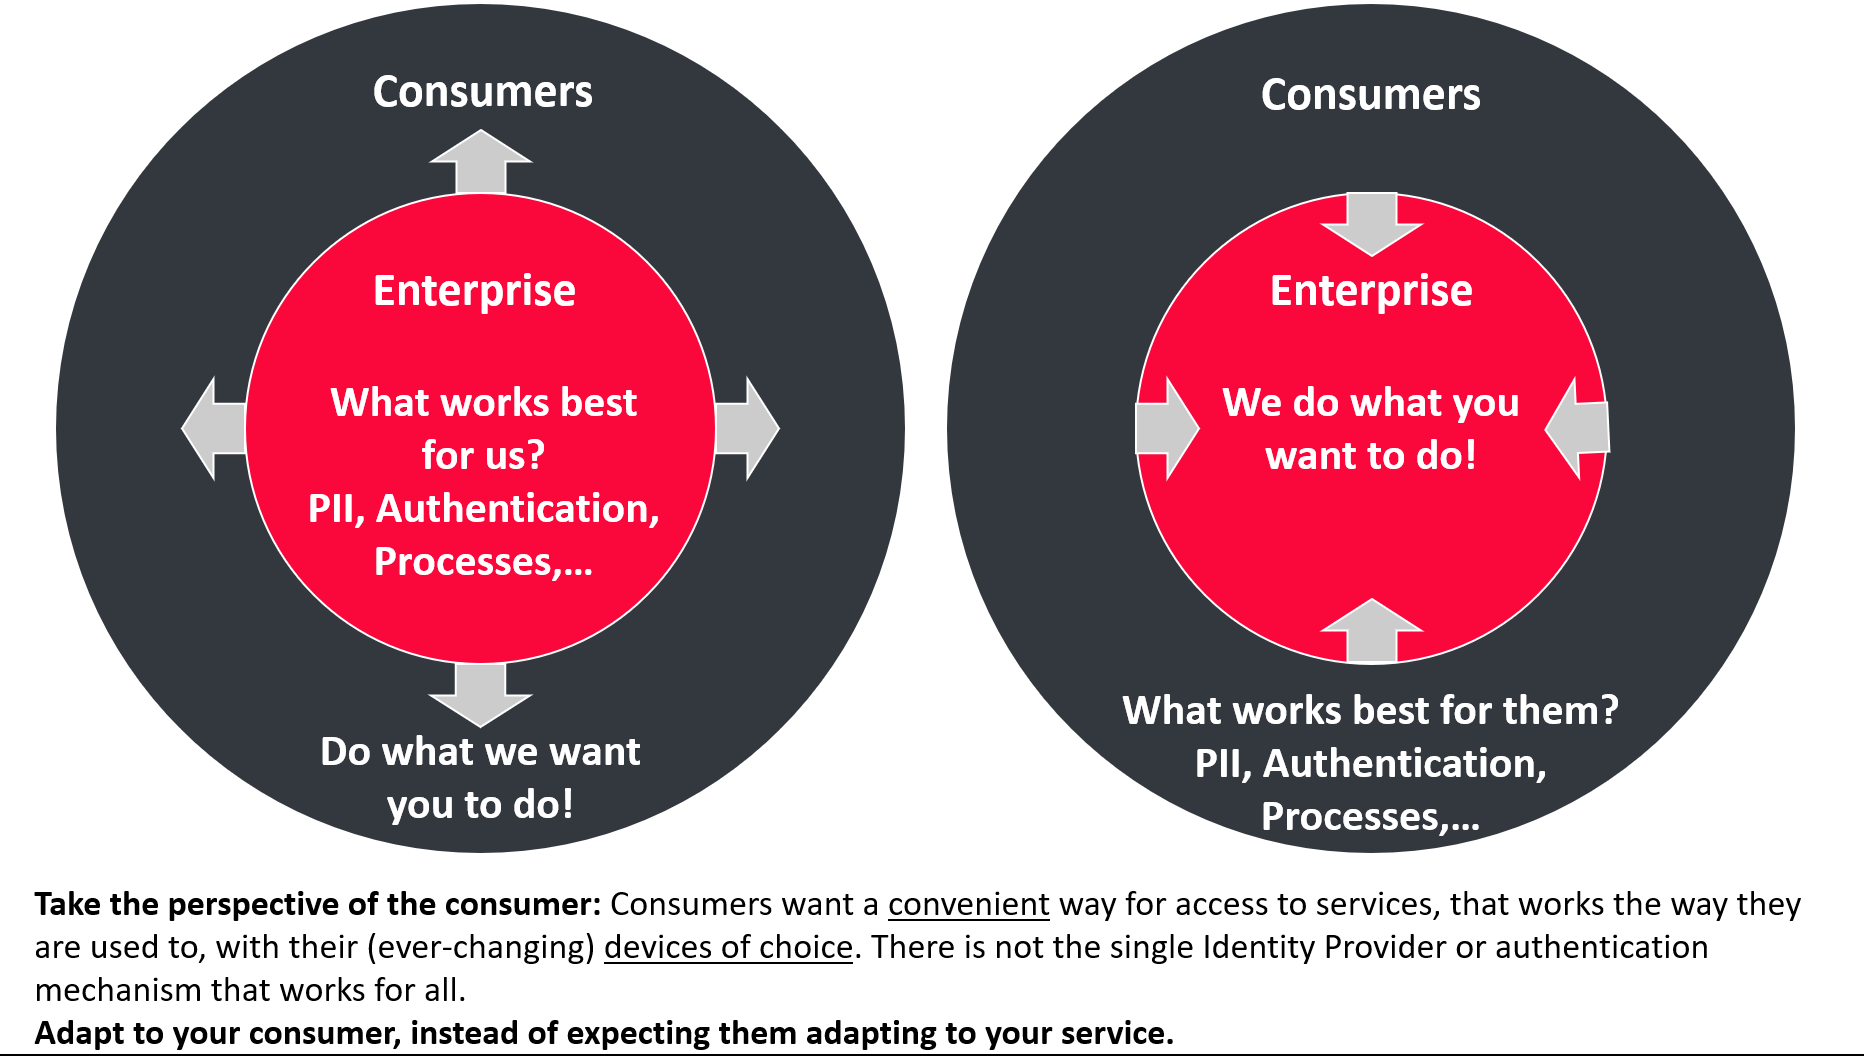 The key to success in Digital Business: Stop thinking inside-out – think outside-in. Focus on the consumer and deliver services the way the consumer wants